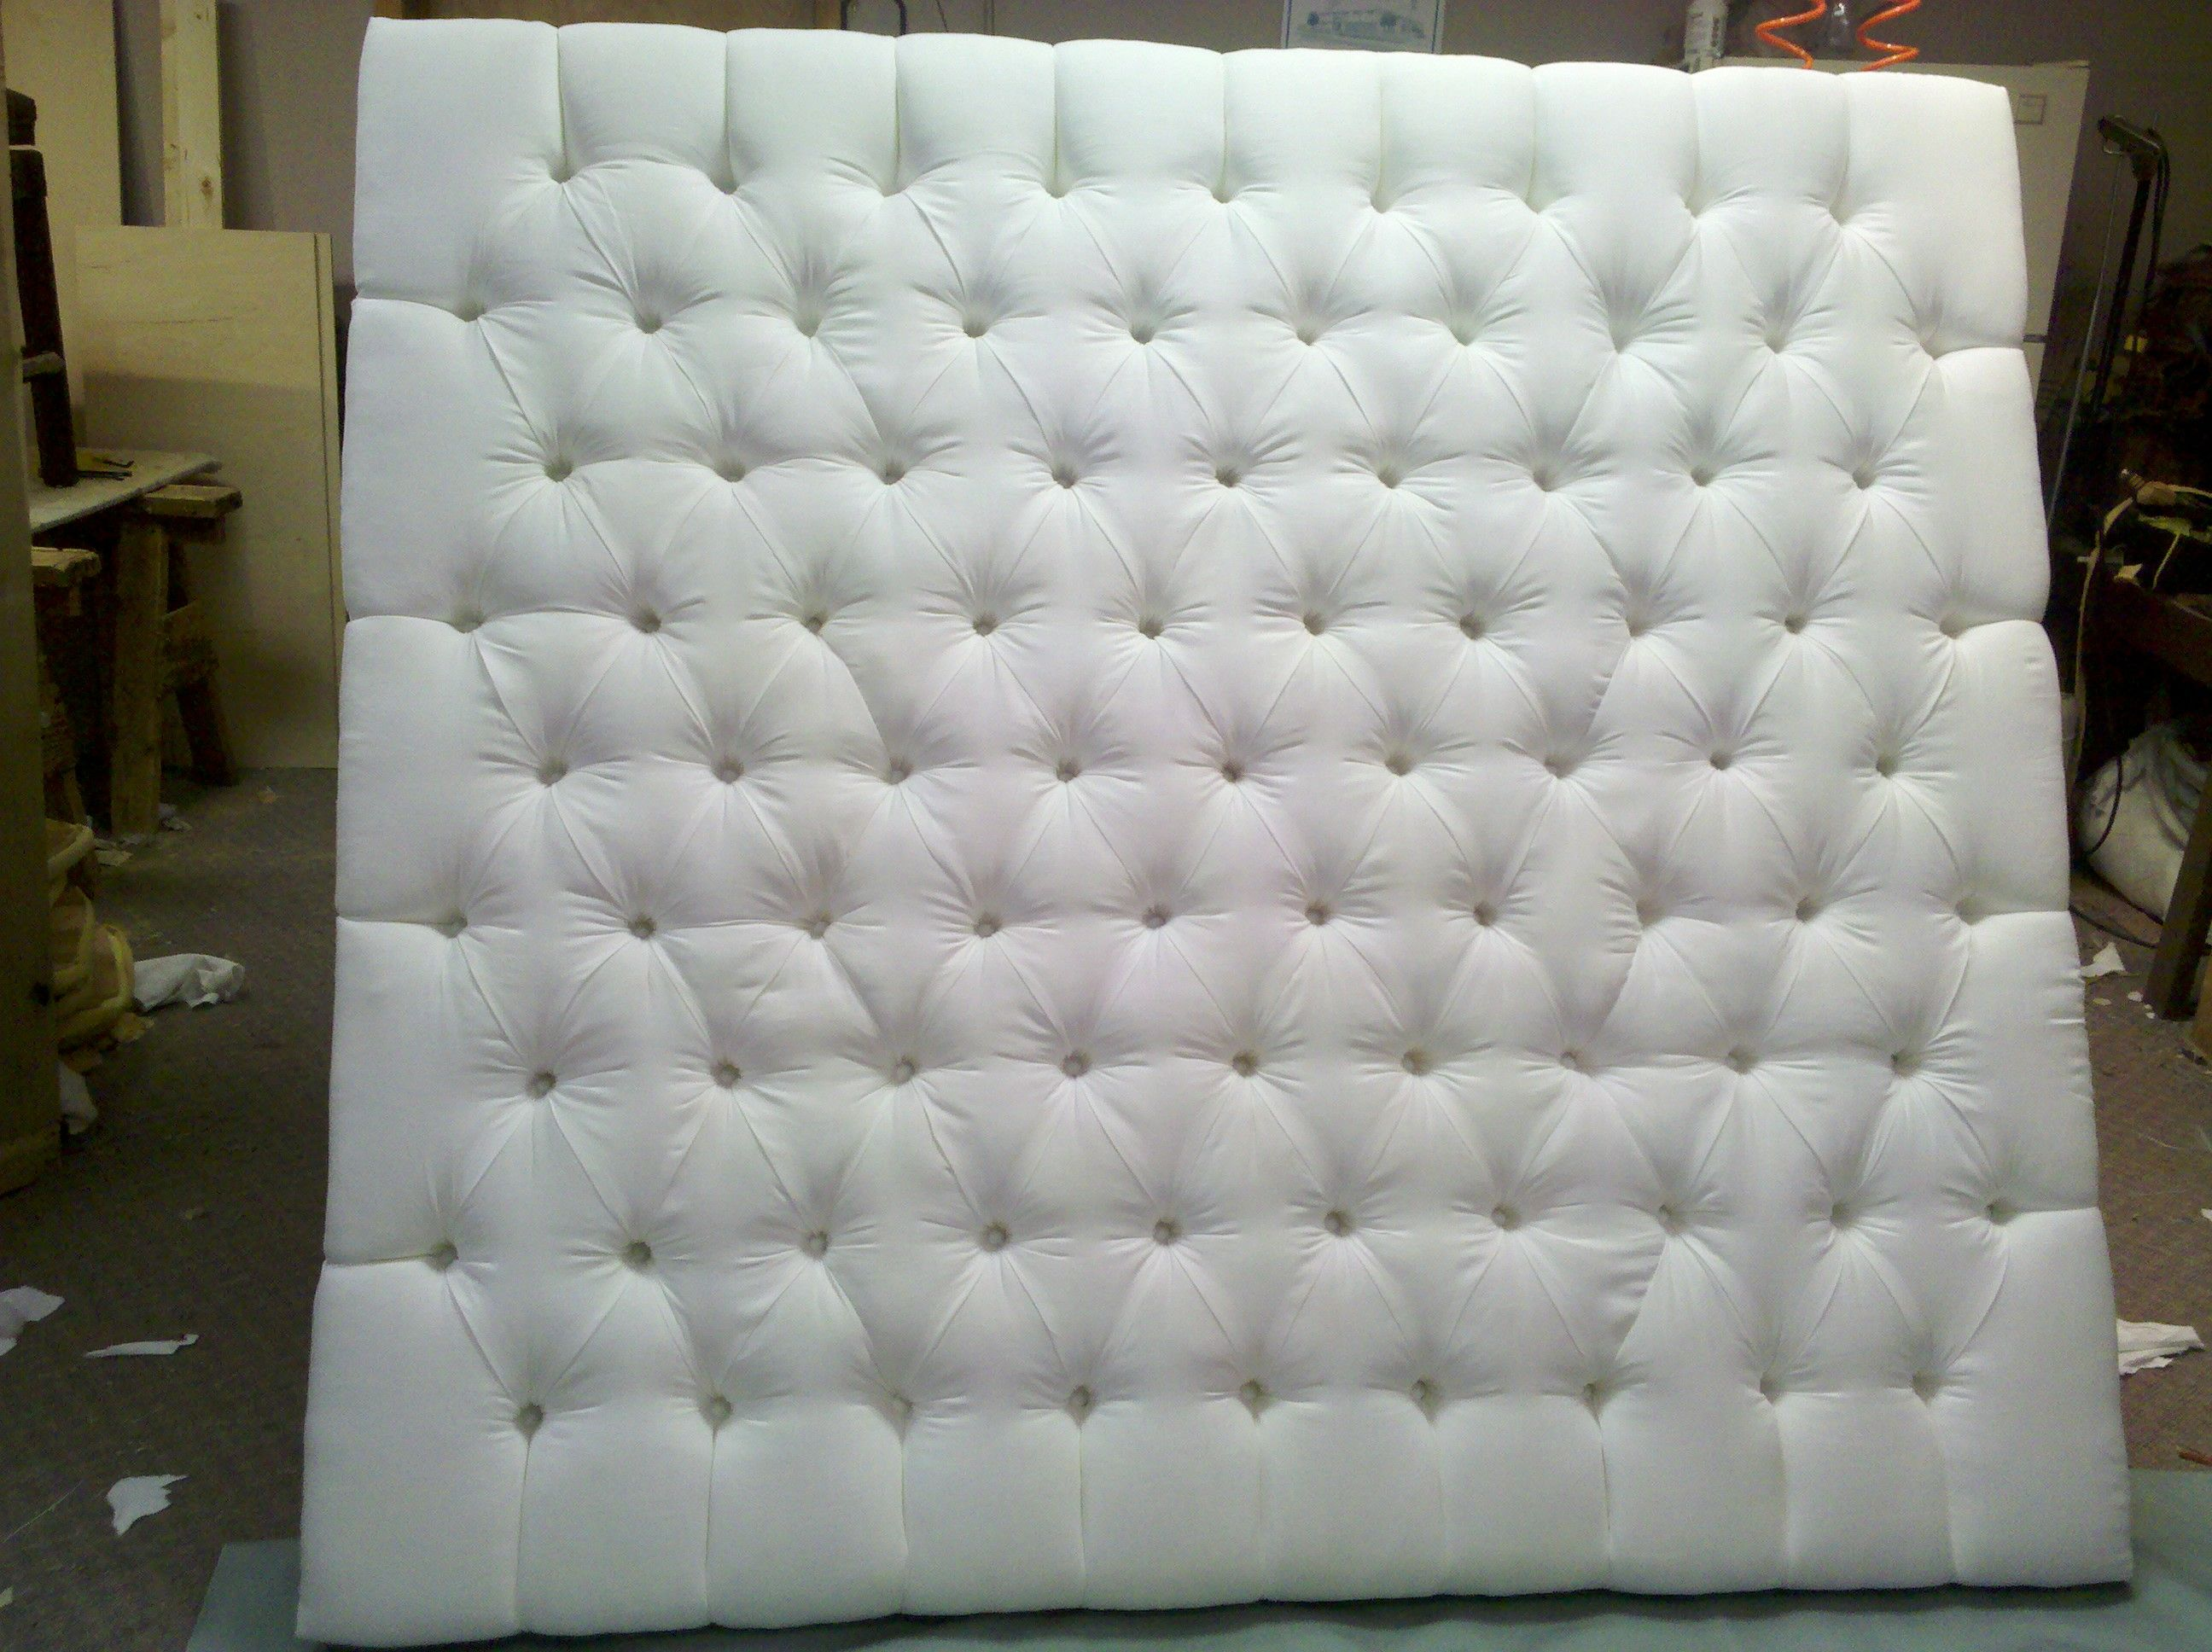 awesome regarding tall also on stunning platform headboards with size fancy beds upholstered high for bedrooms linen outstanding furniture fabric white of ideas board headboard archived best how full beautiful and super design very head padded extra tufted king color